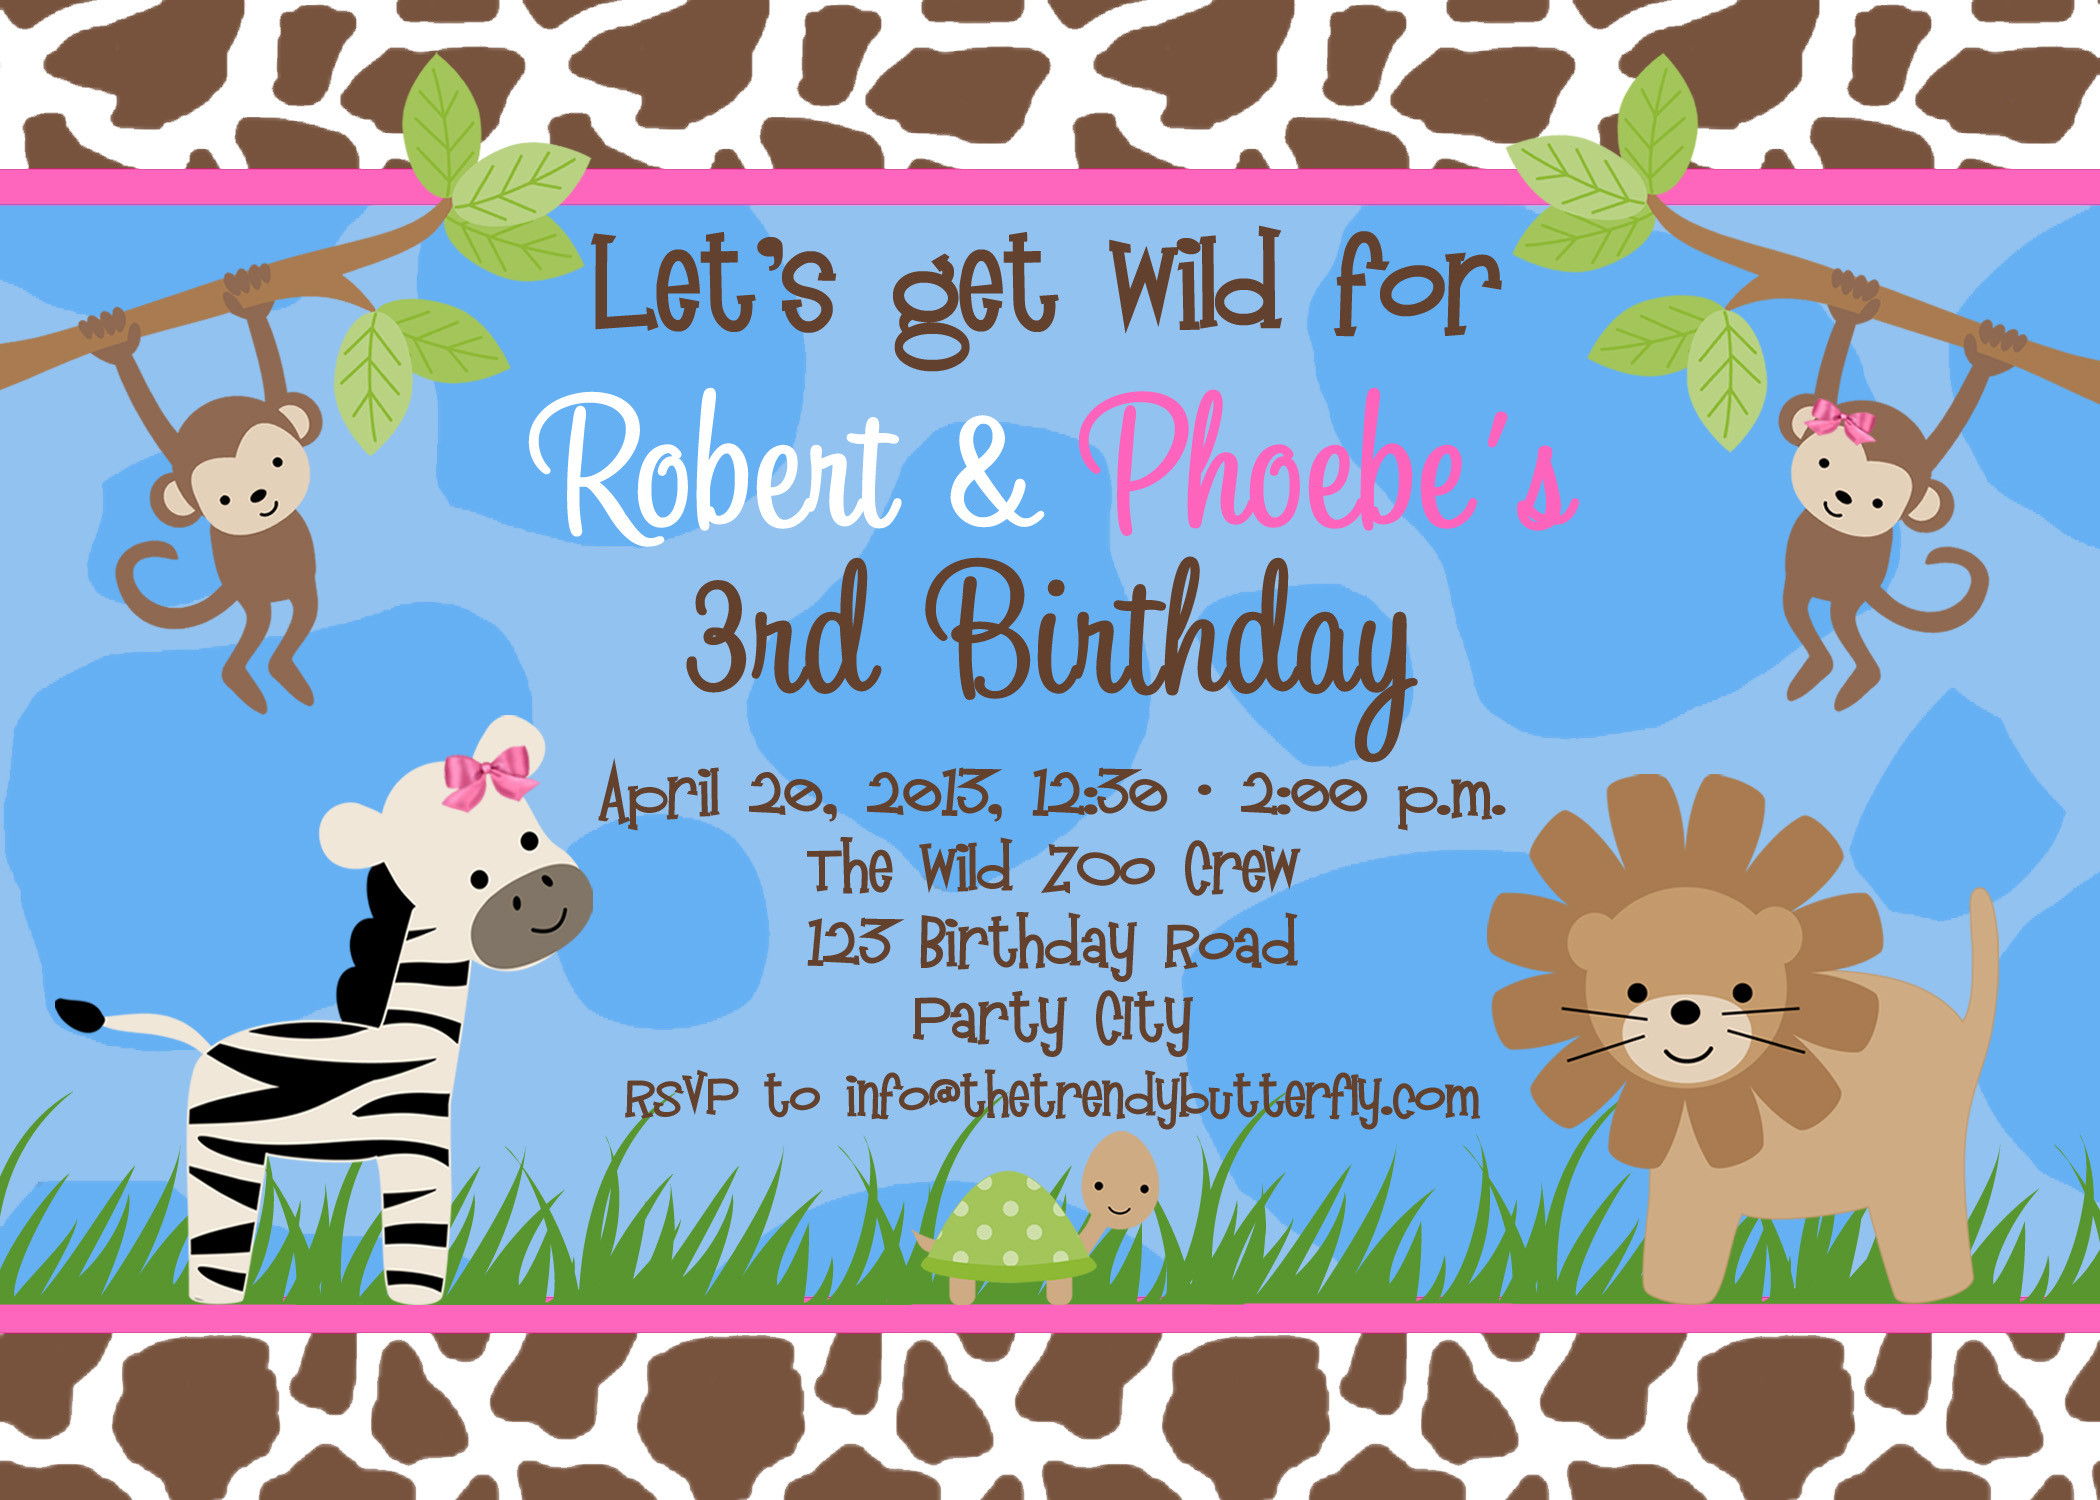 Best ideas about Birthday Party Invitations Free . Save or Pin Free Birthday Party Invitation Templates Now.